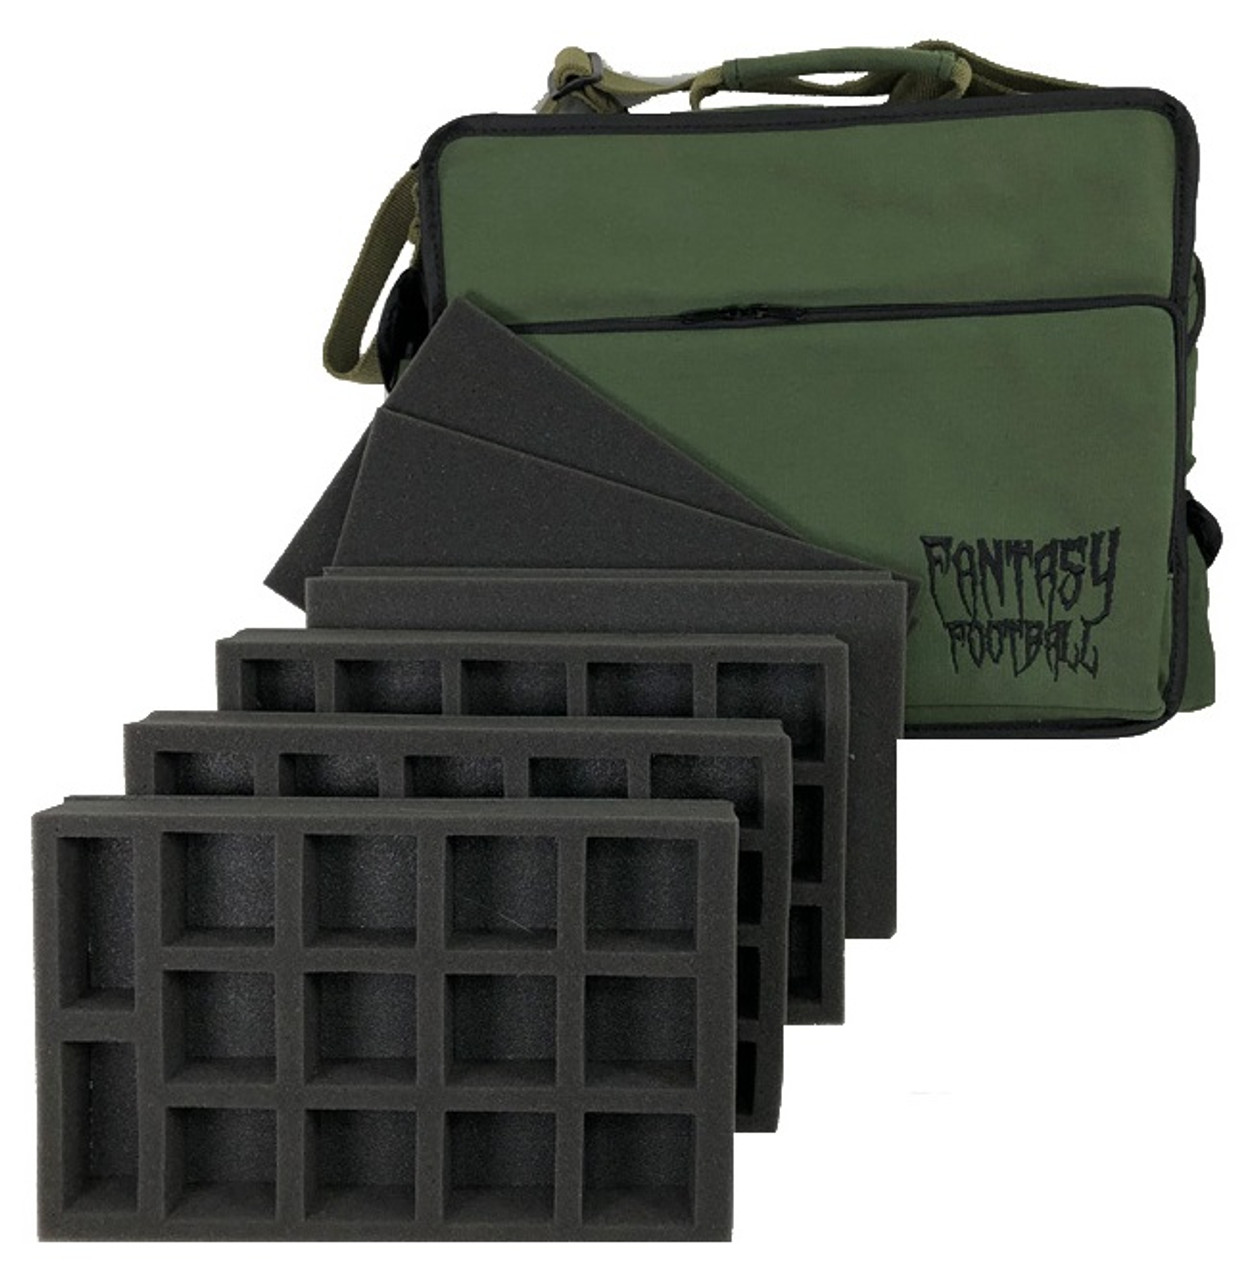 Fantasy Football Bag Standard Load Out Battle Foam Our battlefoam store stocks the entire battlefoam and battlefront miniatures ranges and has sections for p.a.c.k mini trays, battlefoam trays (1.5 inch), malifaux bags, infinity bags, p.a.c.k kits. fantasy football bag standard load out